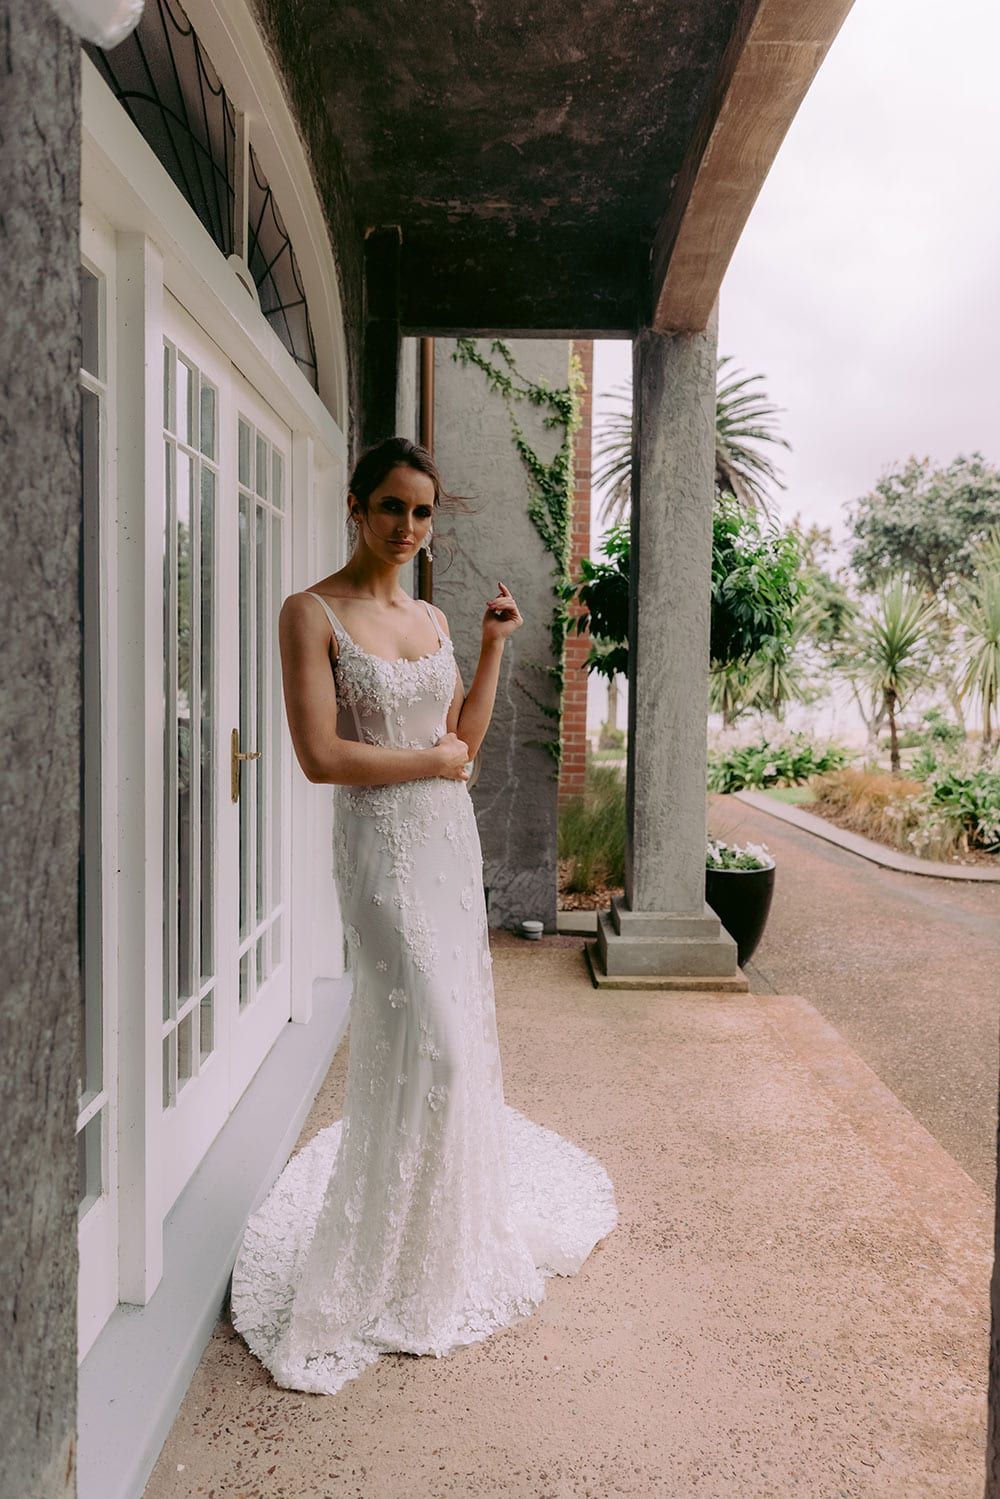 E'more Wedding gown from Vinka Design - This stunning lace wedding gown is hand sewn with a fully beaded 3D flower embroidery. Structured and boned bodice with scoop neckline in the front and low back. Stretch fit skirt flares into full lace train. Model wearing gown outside old heritage building.